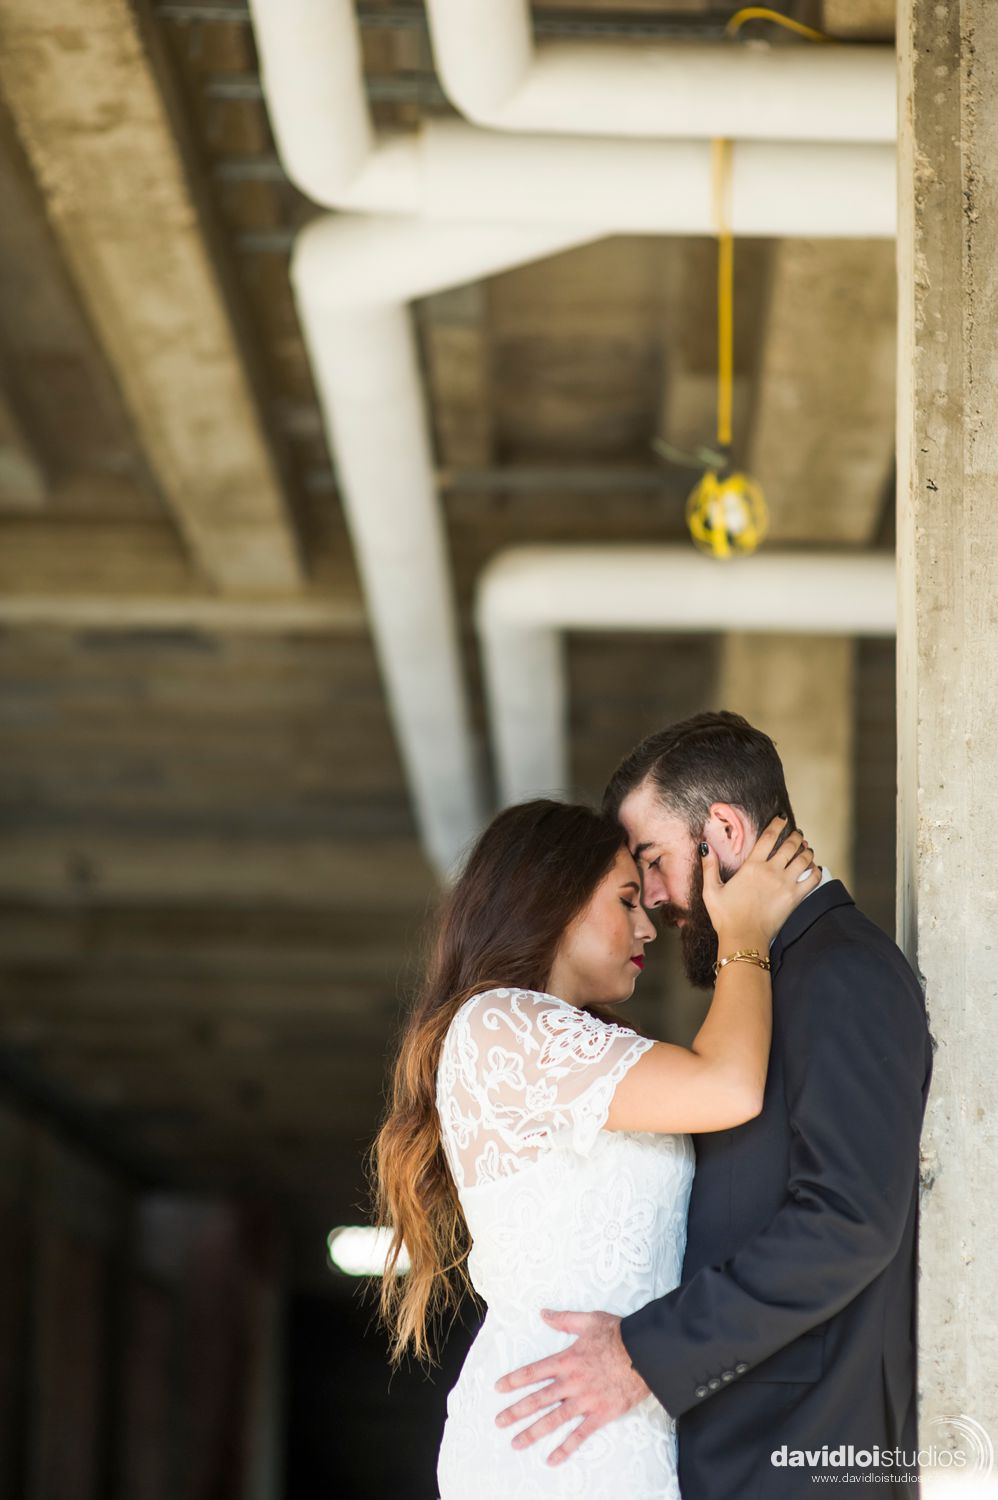 508 Park Engagement Session Dallas TX - 2.jpg